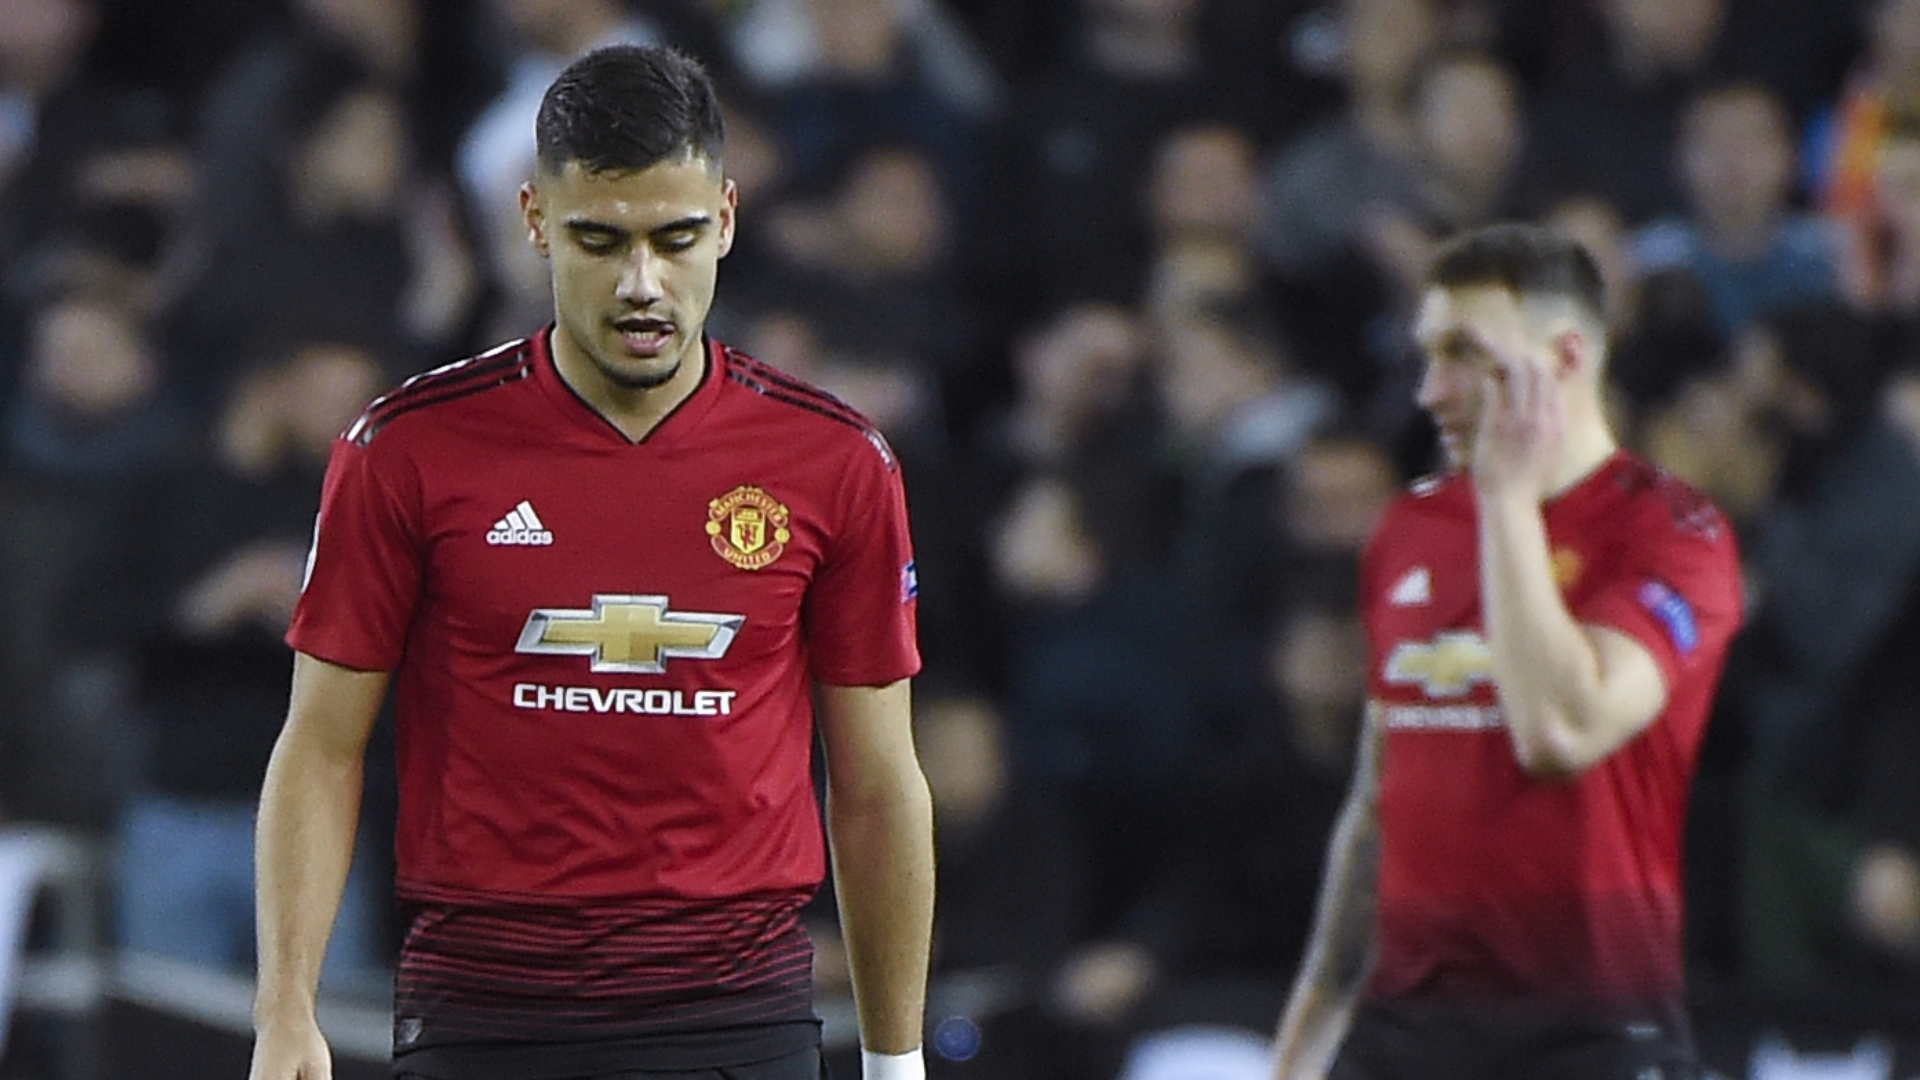 Pereira compares himself to Beckham as he seeks to make amends at Man Utd